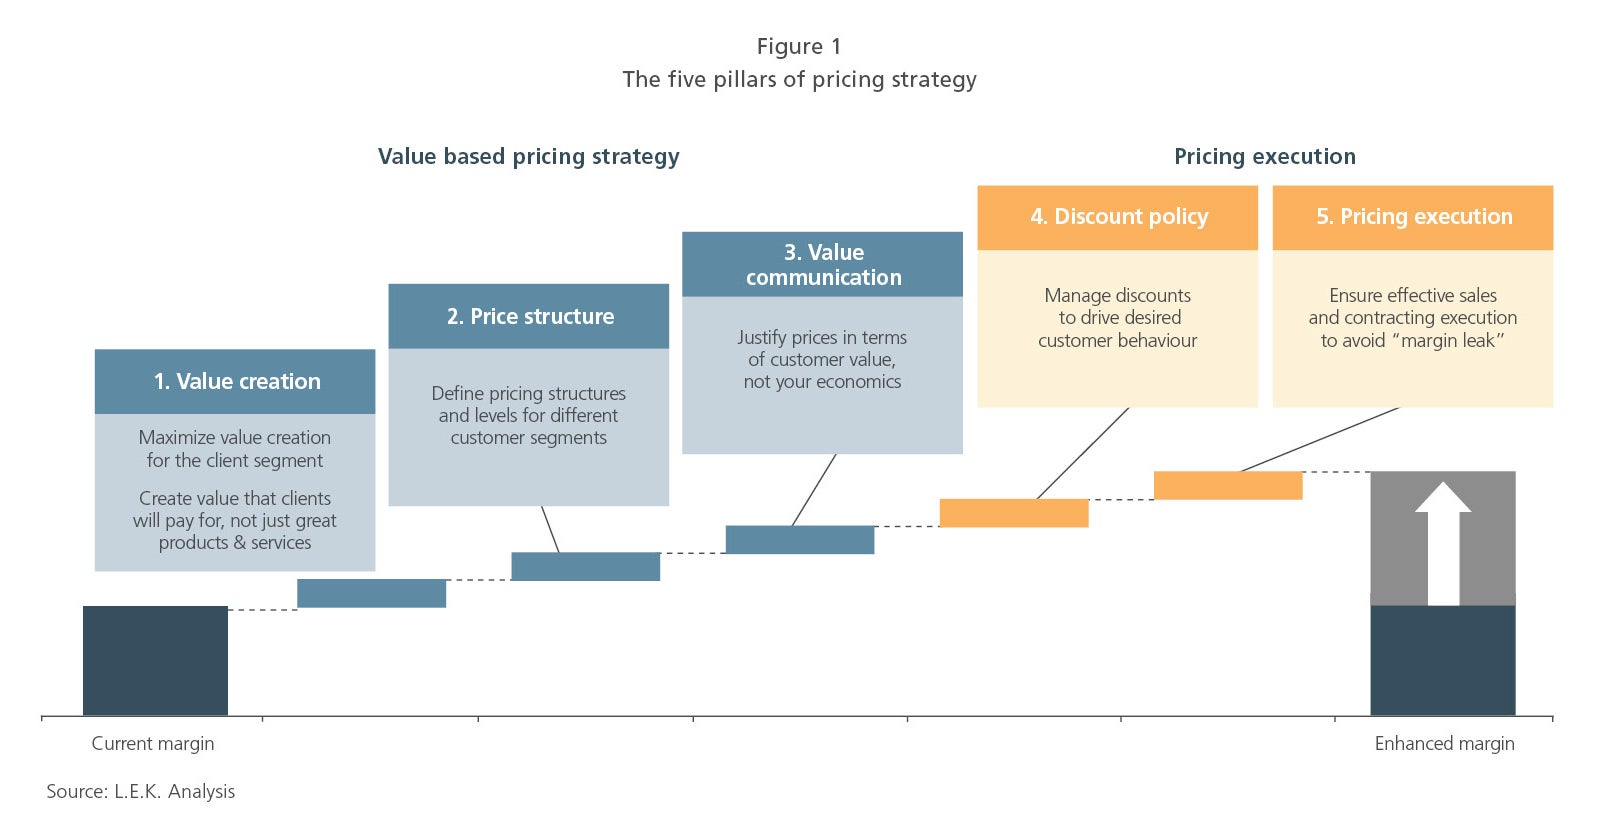 The five pillars of pricing strategy